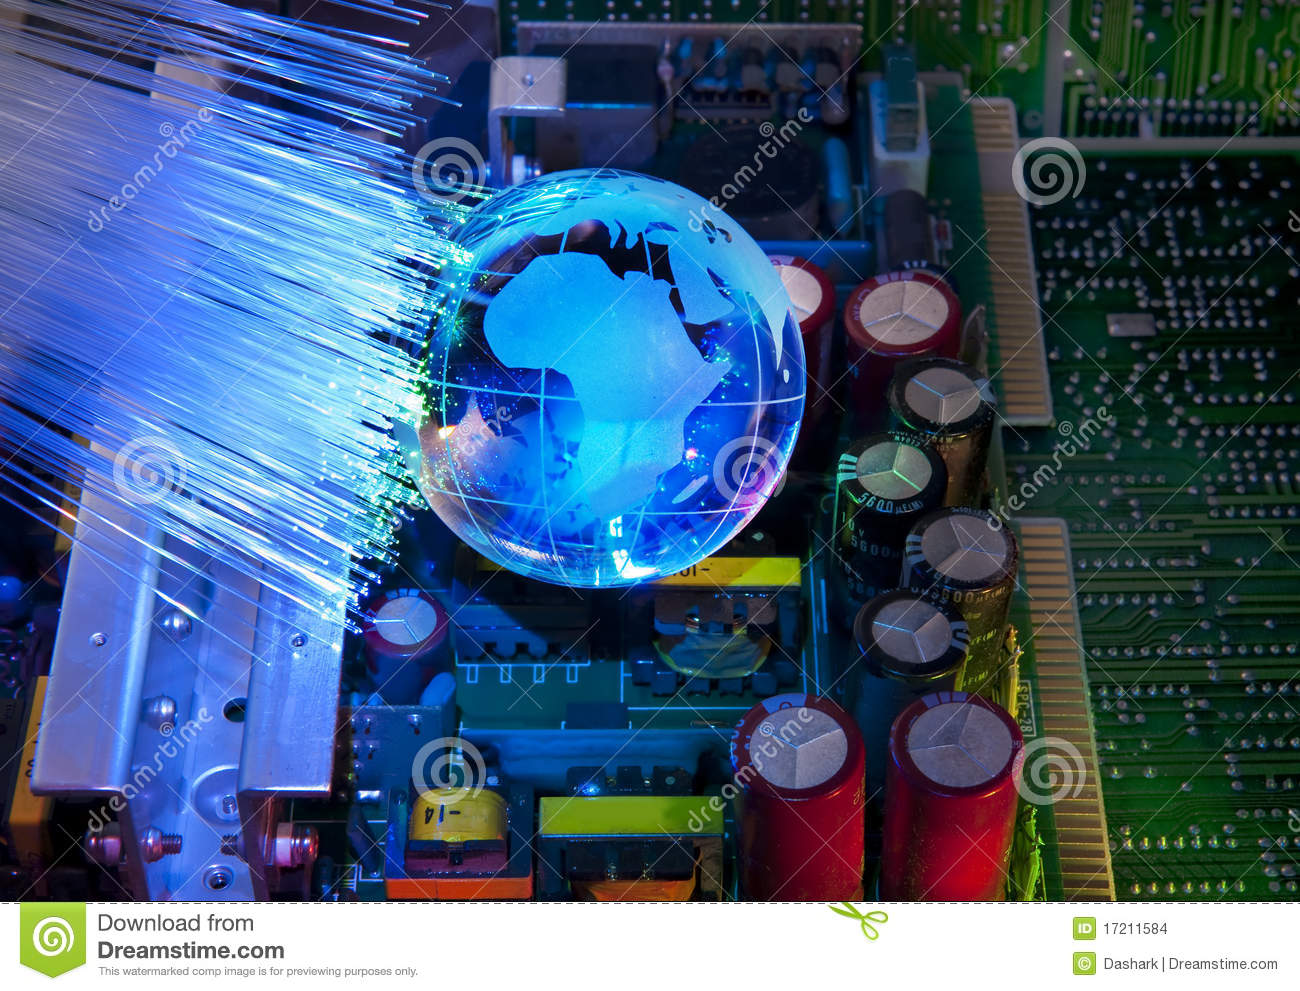 Electronic Printed Circuit Board Stock Photo Image Of Complex Stockfoto Pcb Used In Industrial Download Assembly 17211584